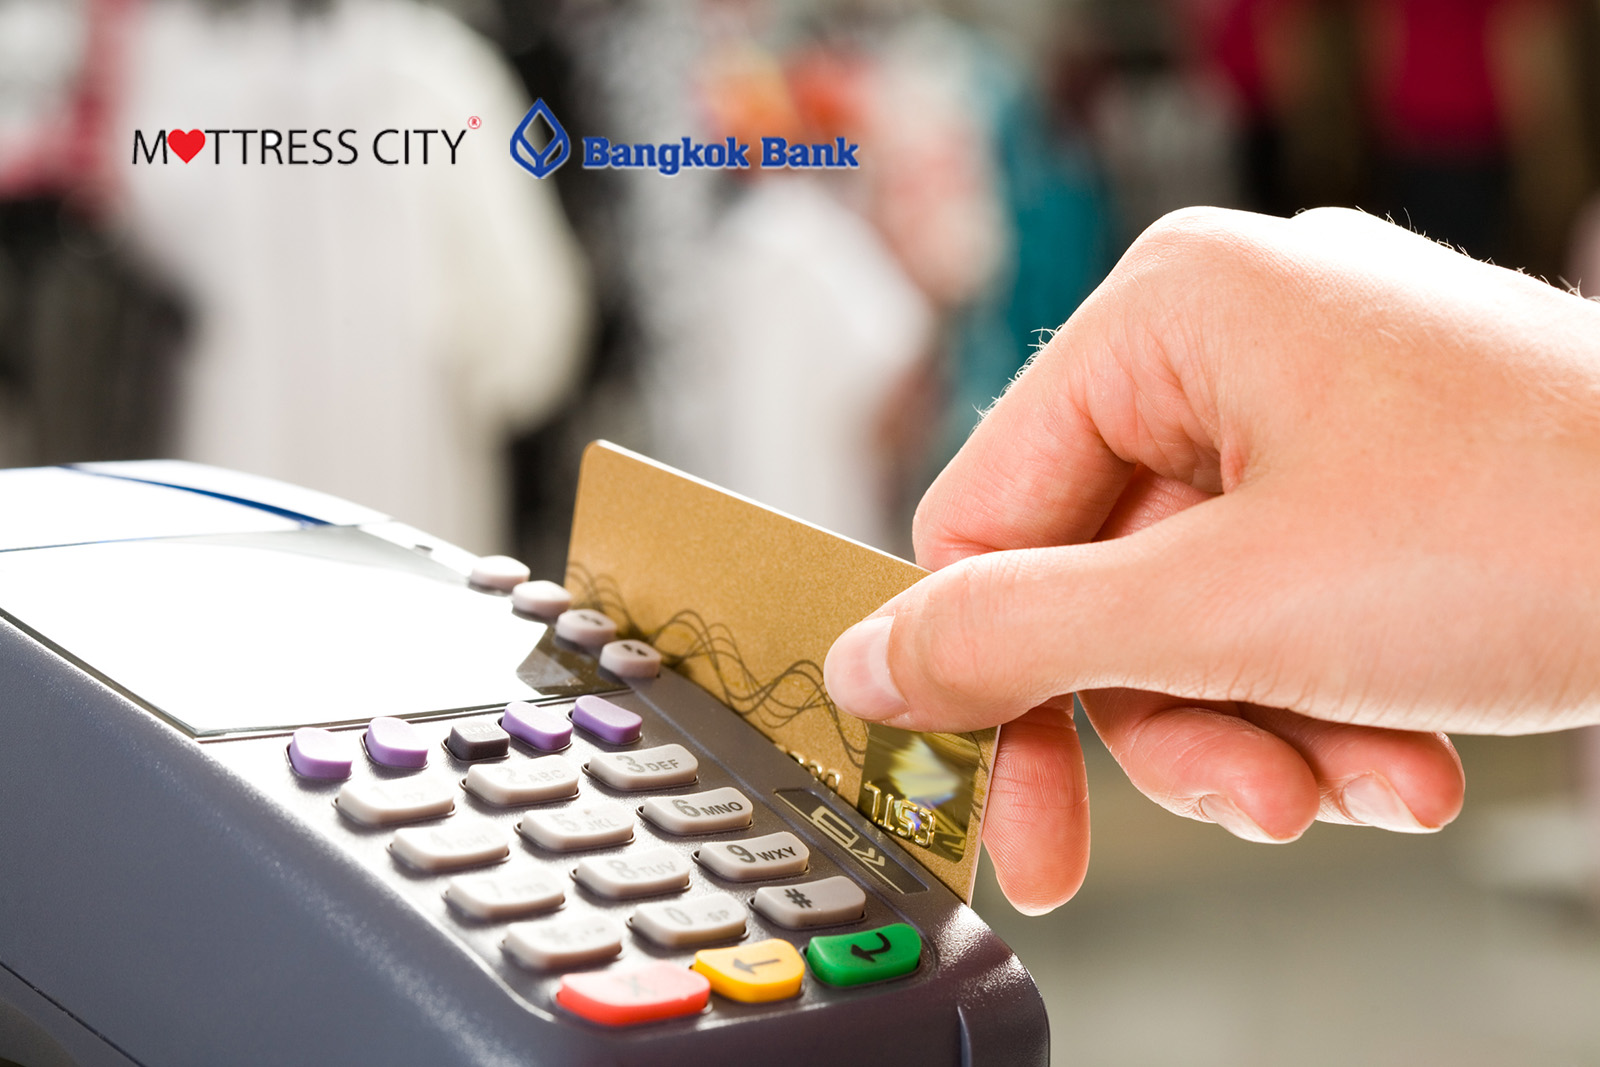 Spread the cost with credit card installments and cash back from Bangkok Bank